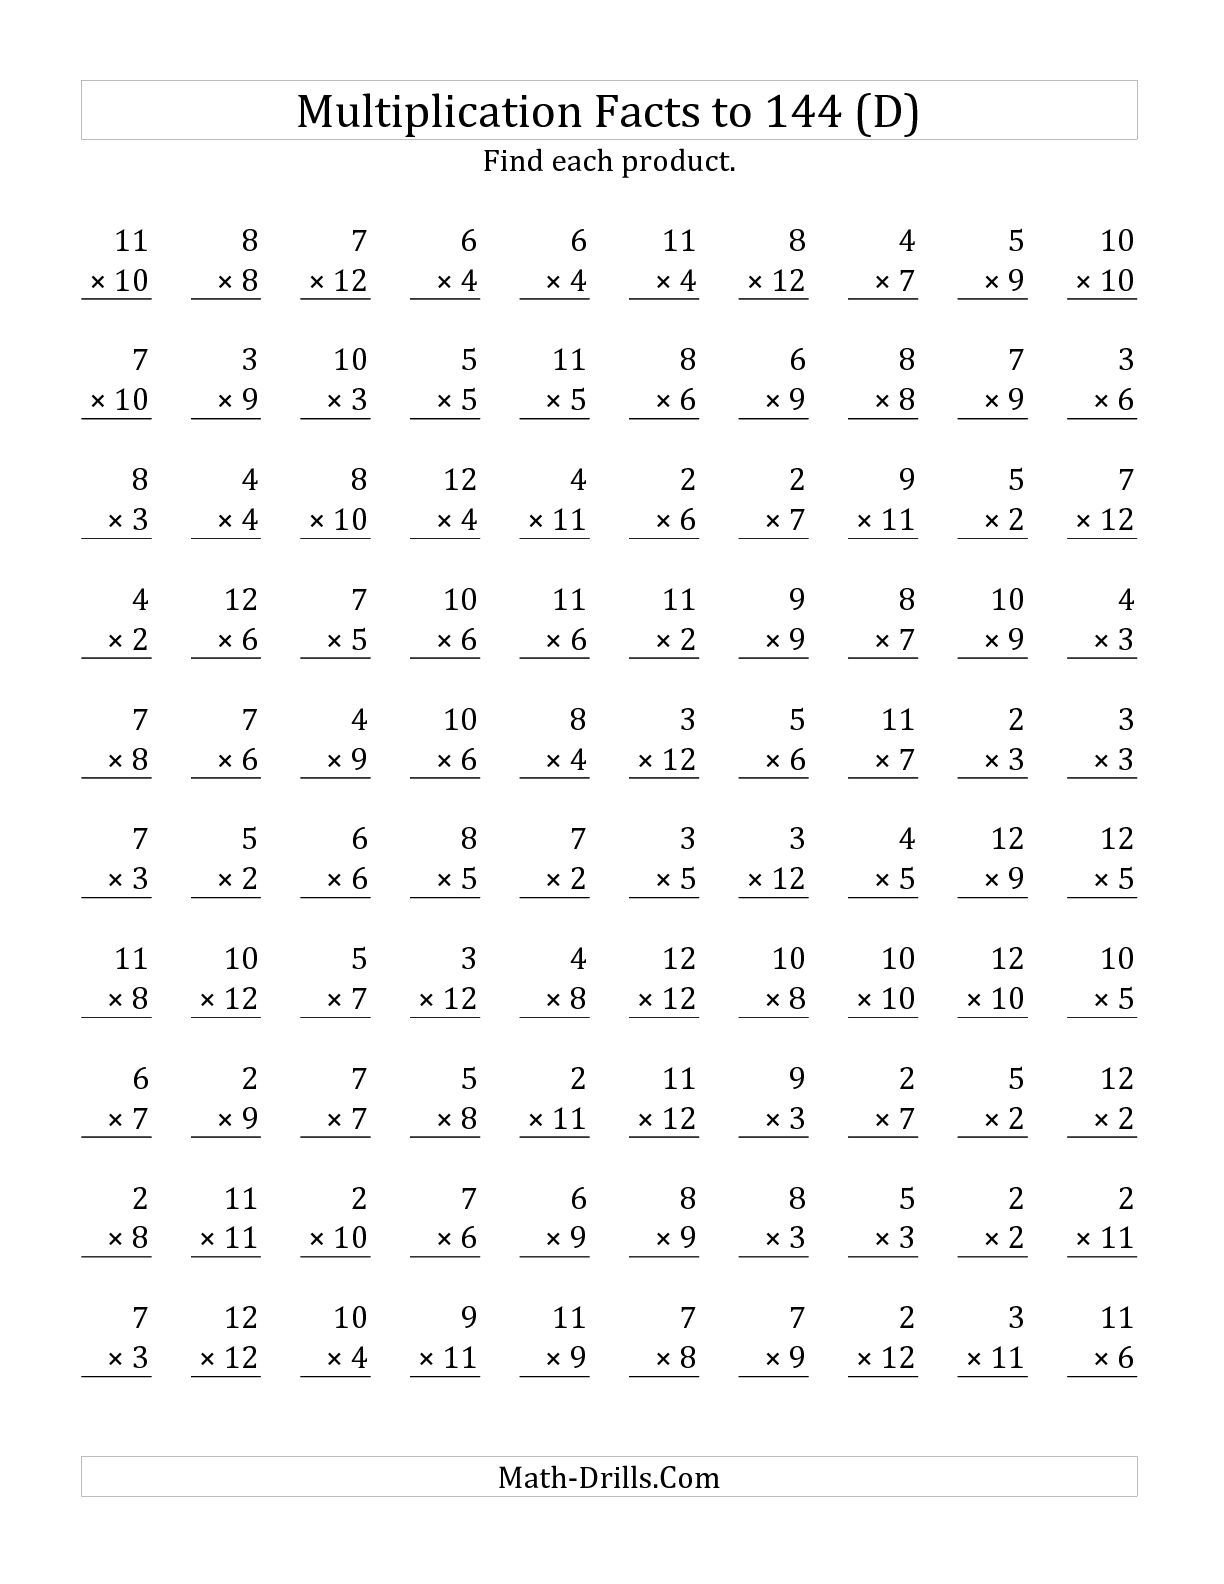 The Multiplication Facts To 144 No Zeros No Ones D